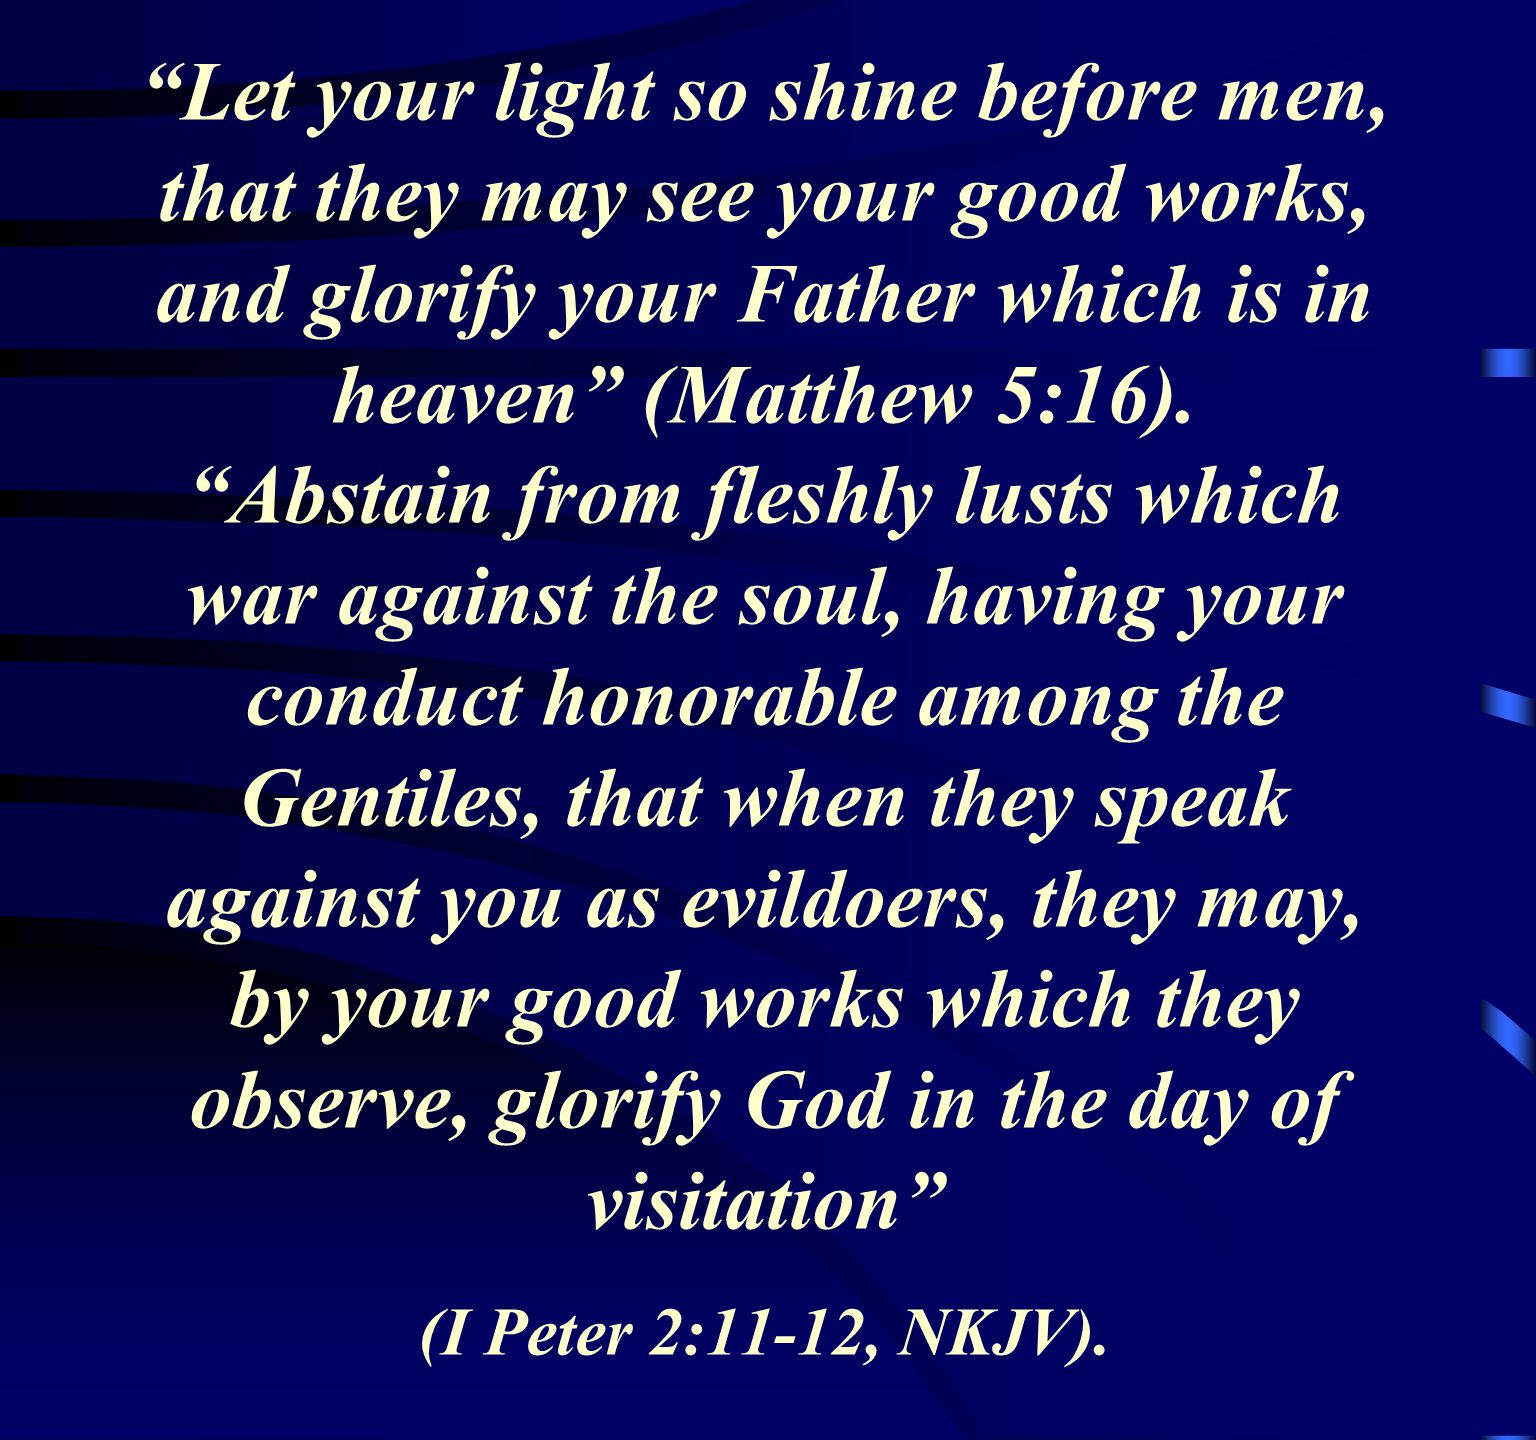 Let your light so shine before men, that they may see your good works, and glorify your Father which is in heaven (Matthew 5:16).